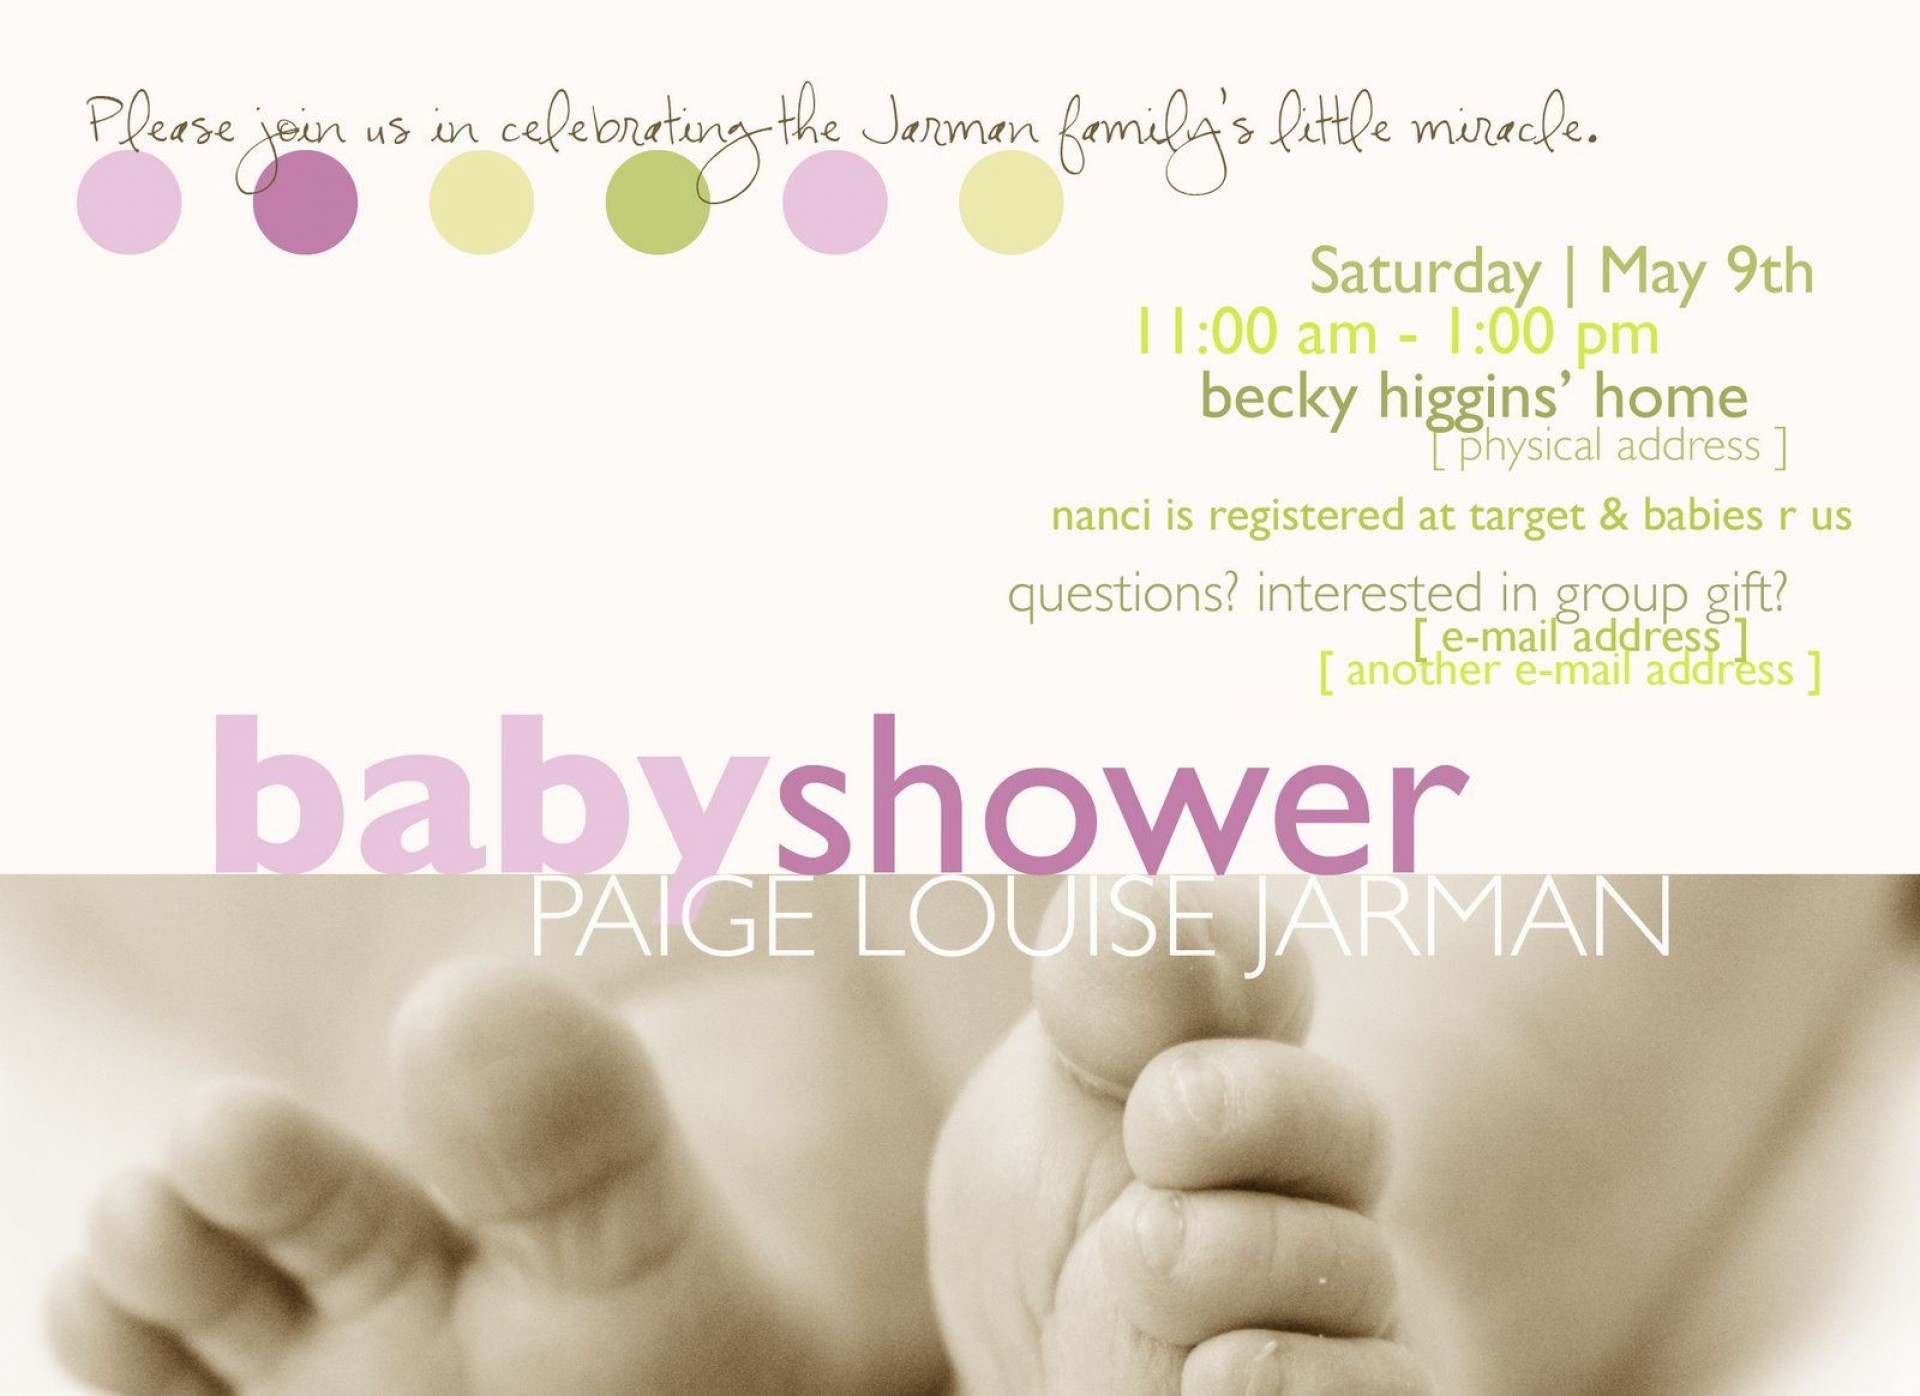 002 Archaicawful Microsoft Word Invitation Template Baby Shower Highest Quality  Free Editable Invite1920